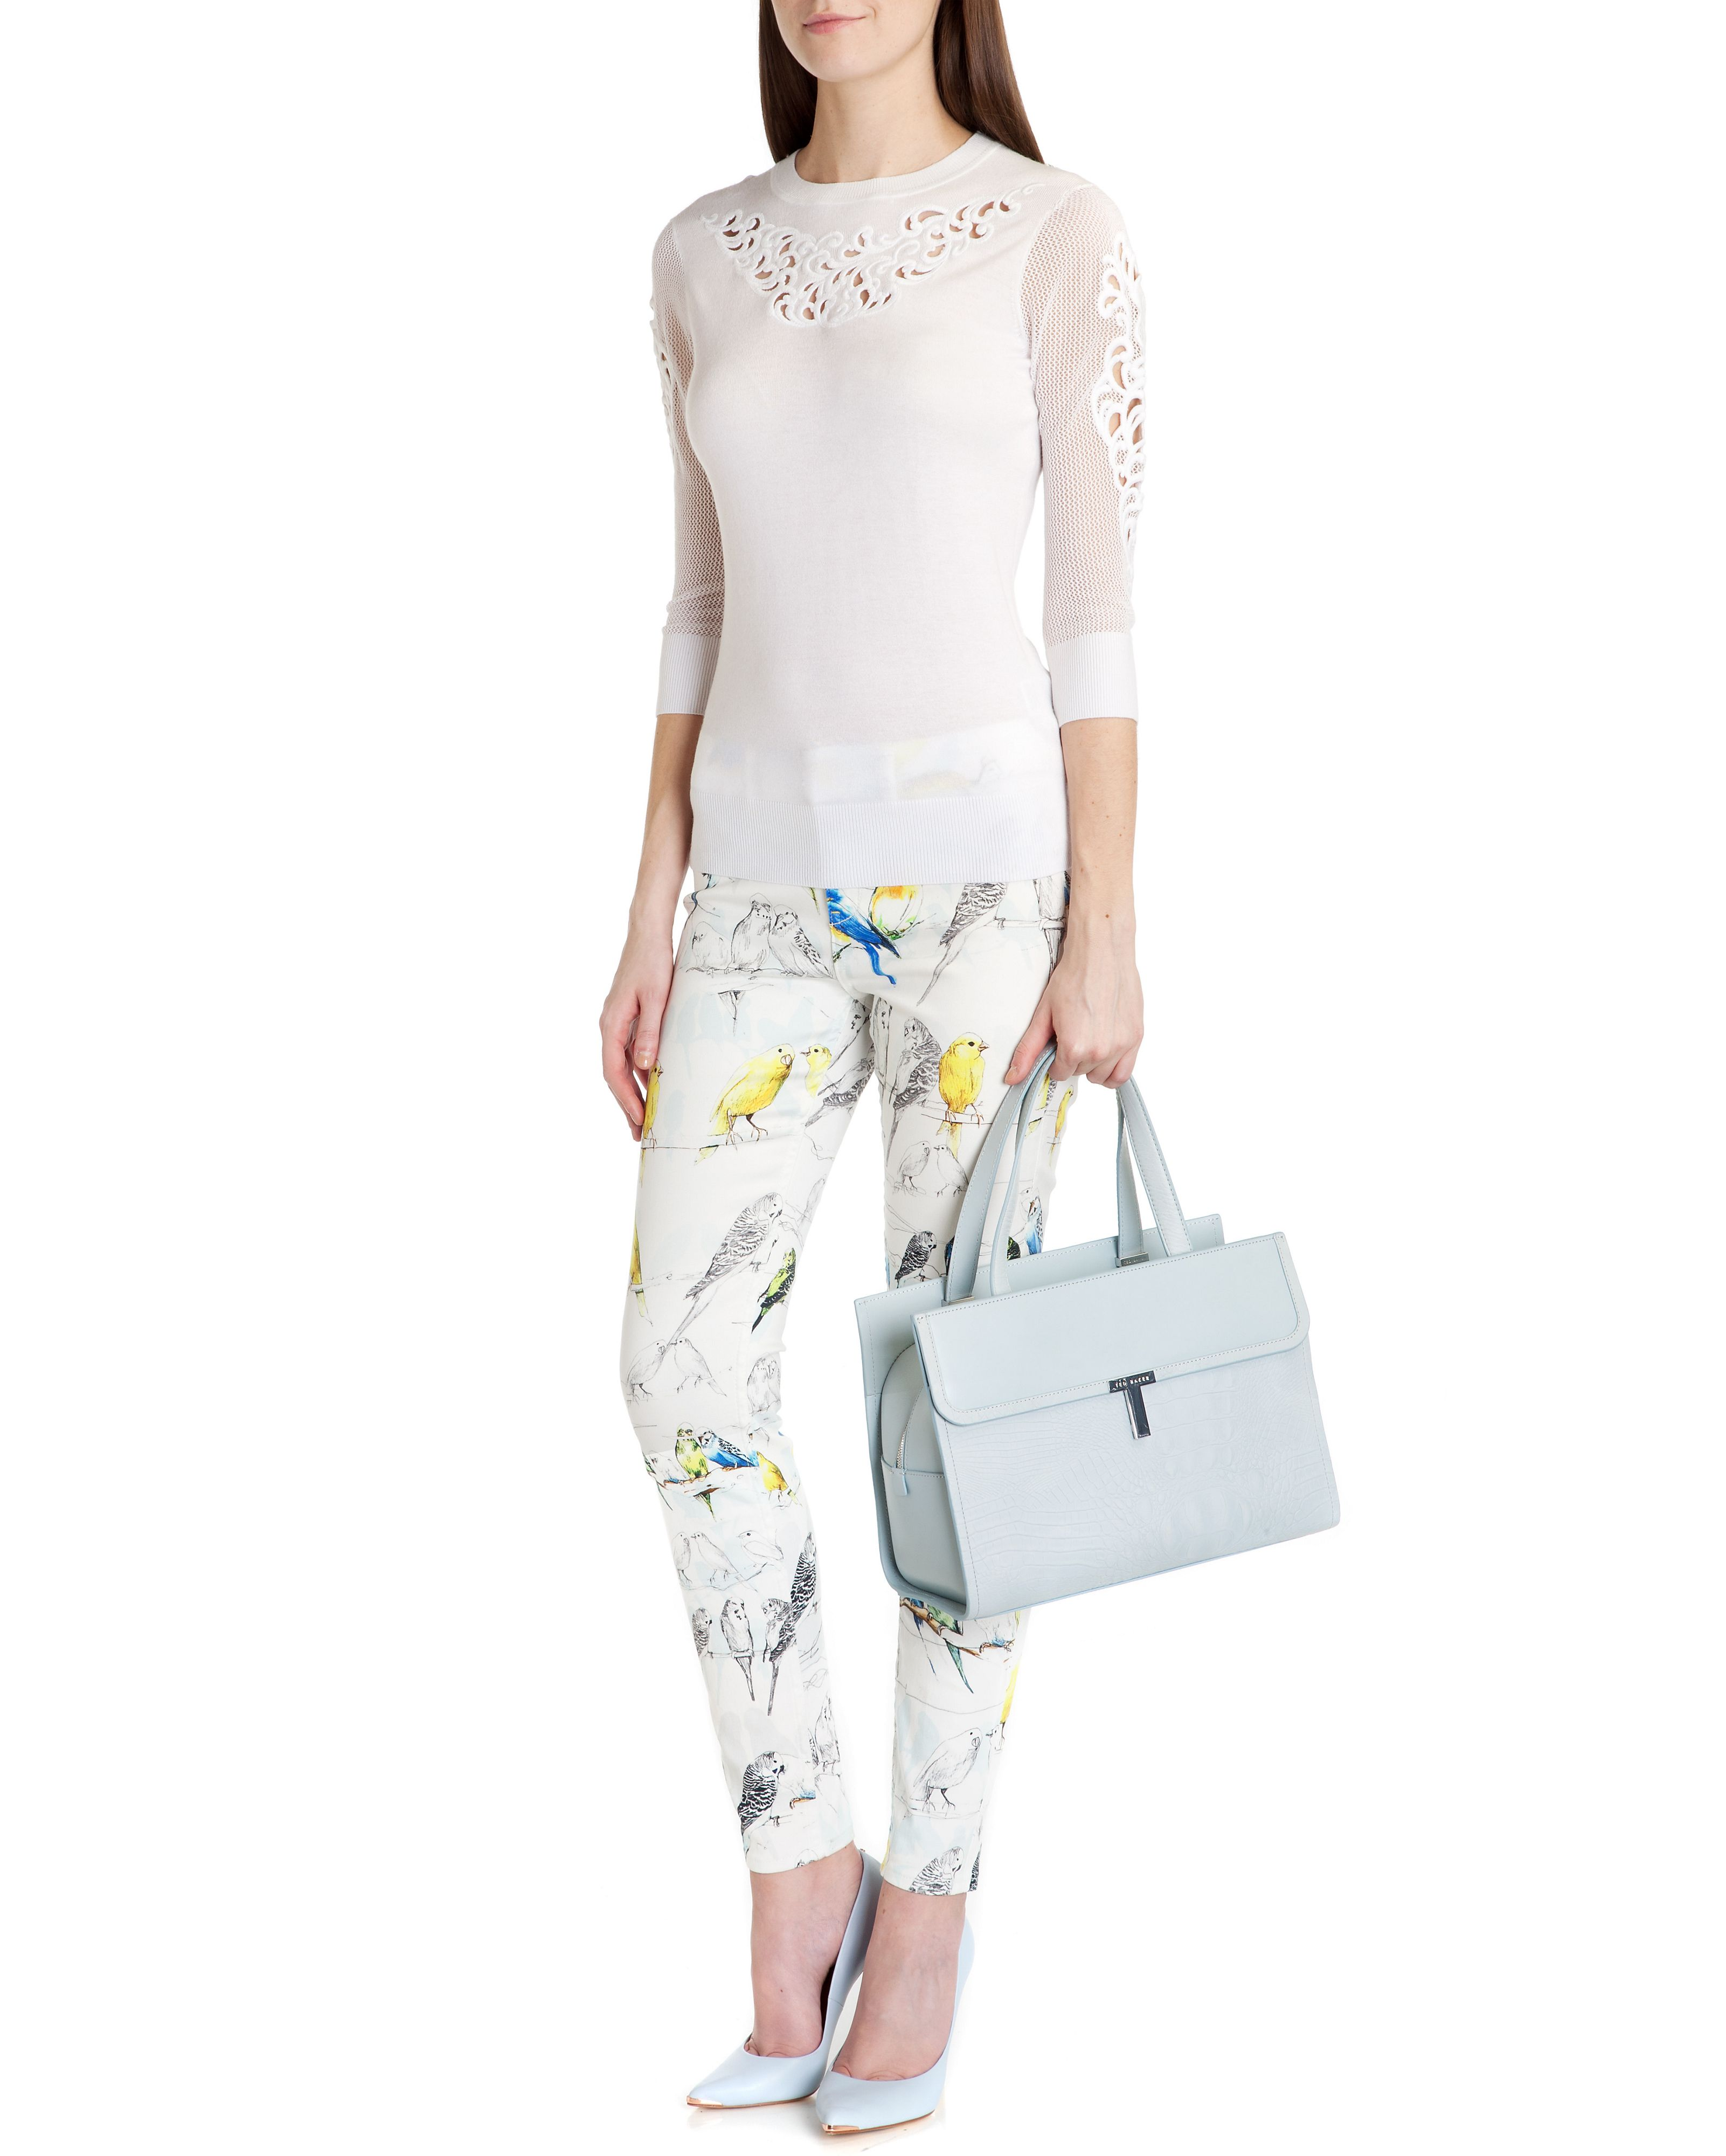 Rosean embroidered lace jumper